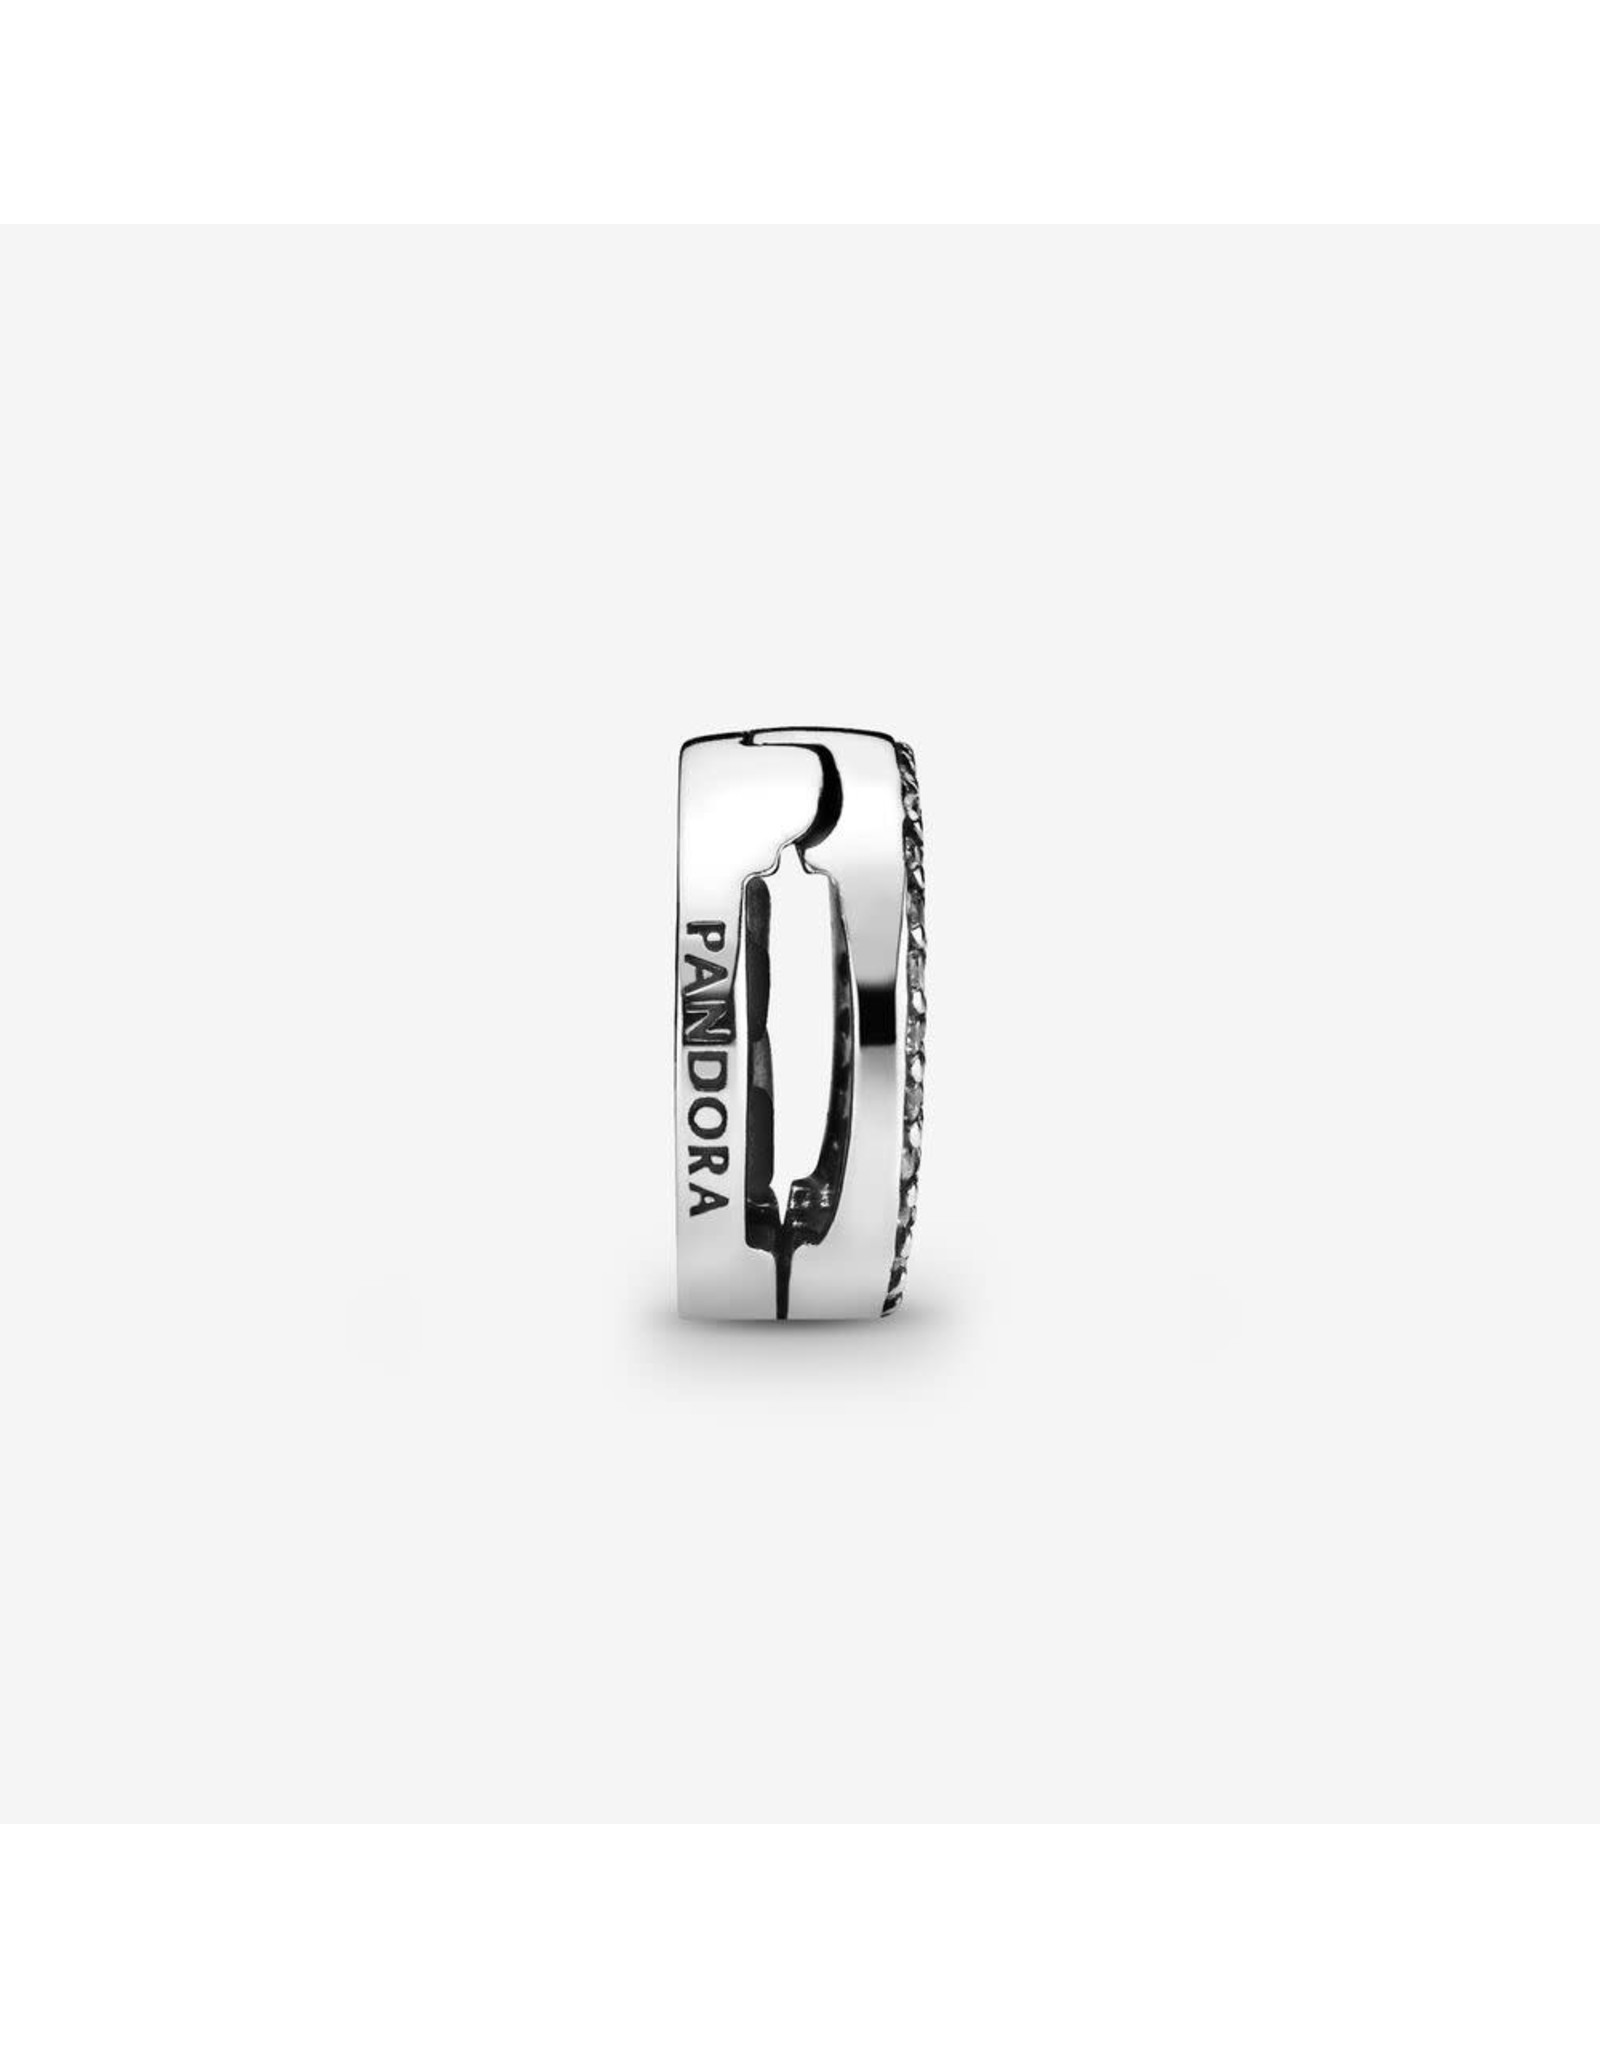 Pandora Pandora Reflexions Clip Charm In Sterling Silver With 69 Pav-Set Clear CZ